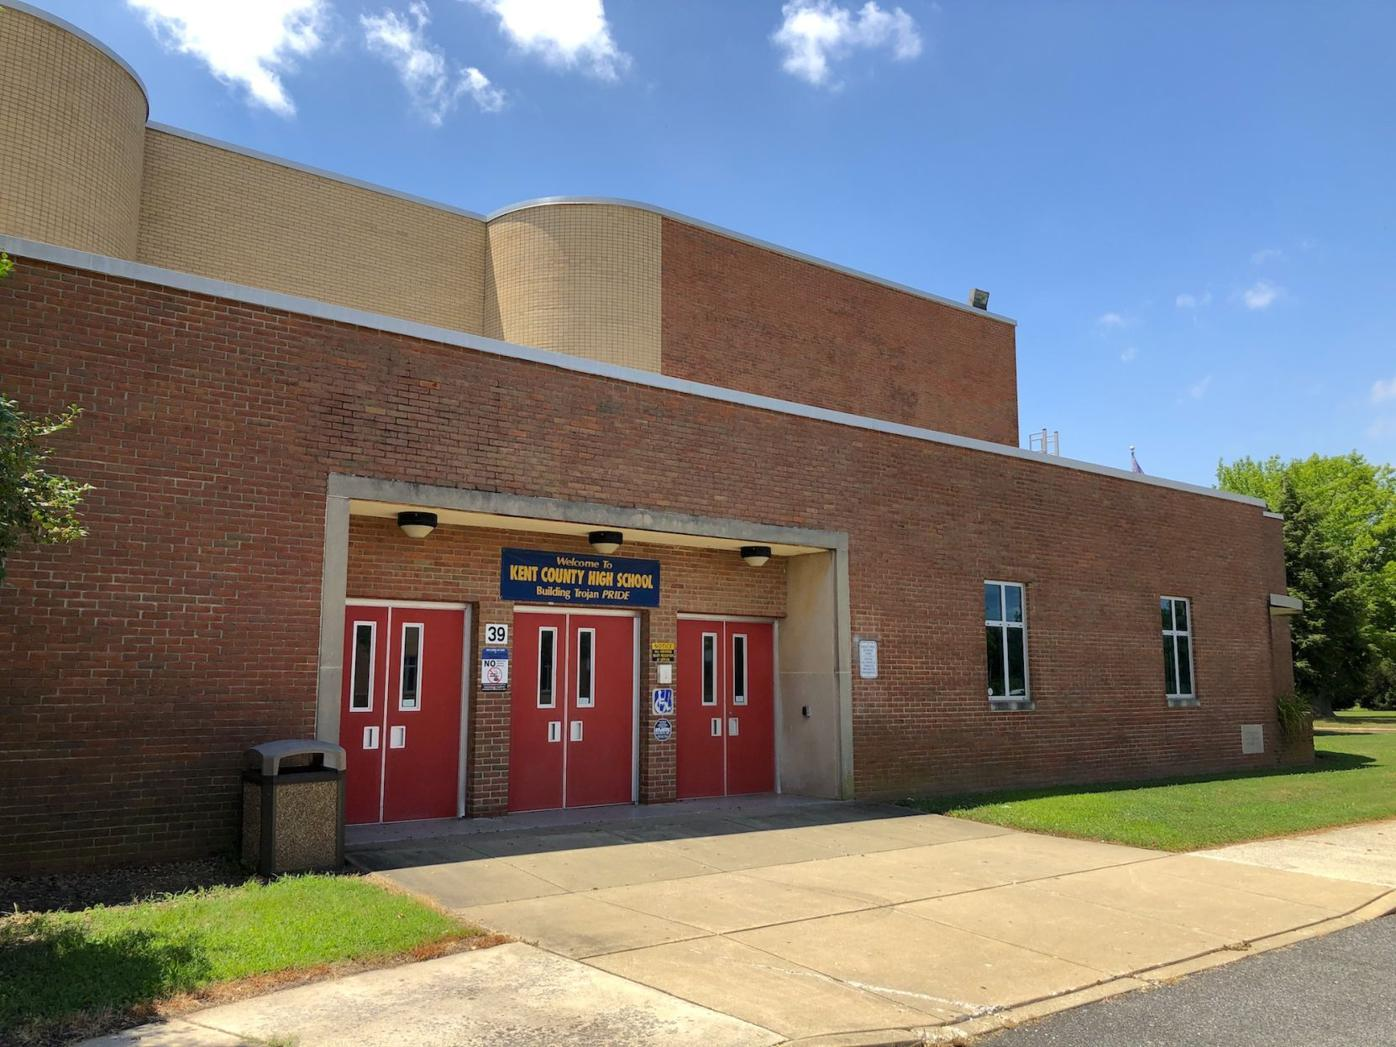 Fights, vandalism reported at high school